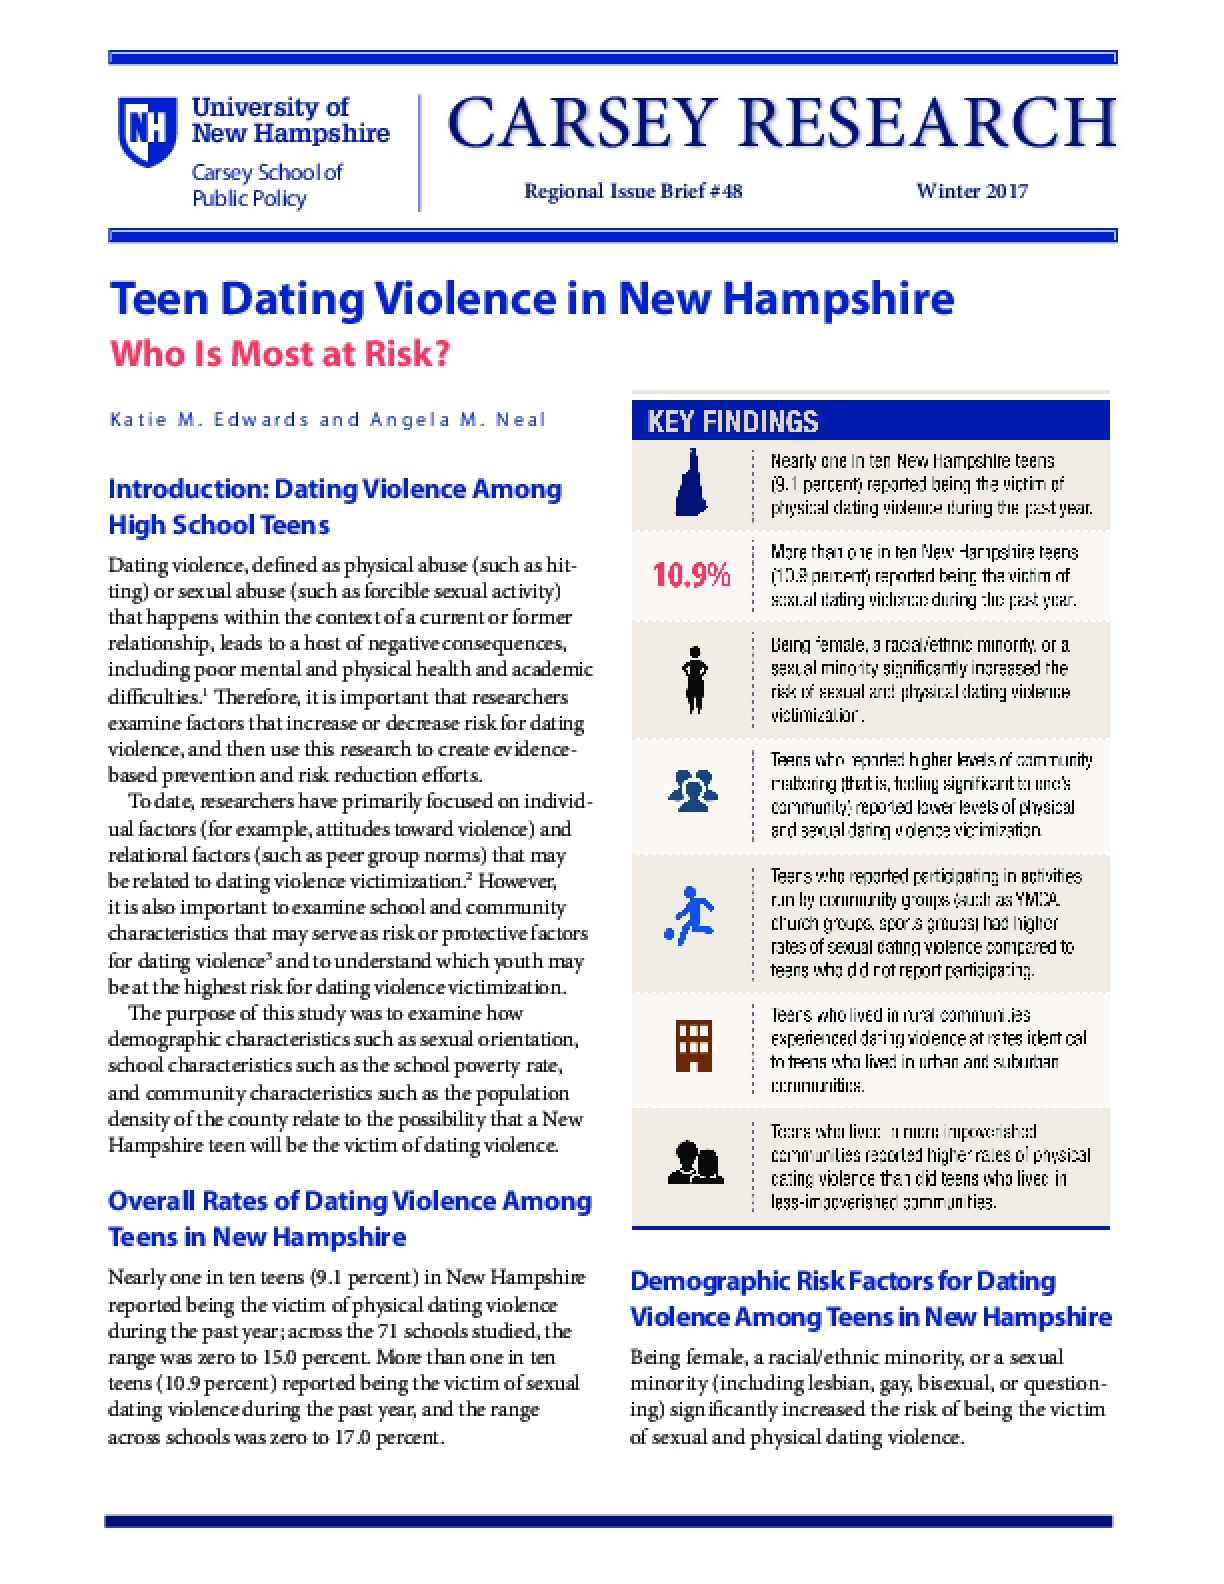 Teen Dating Violence in New Hampshire